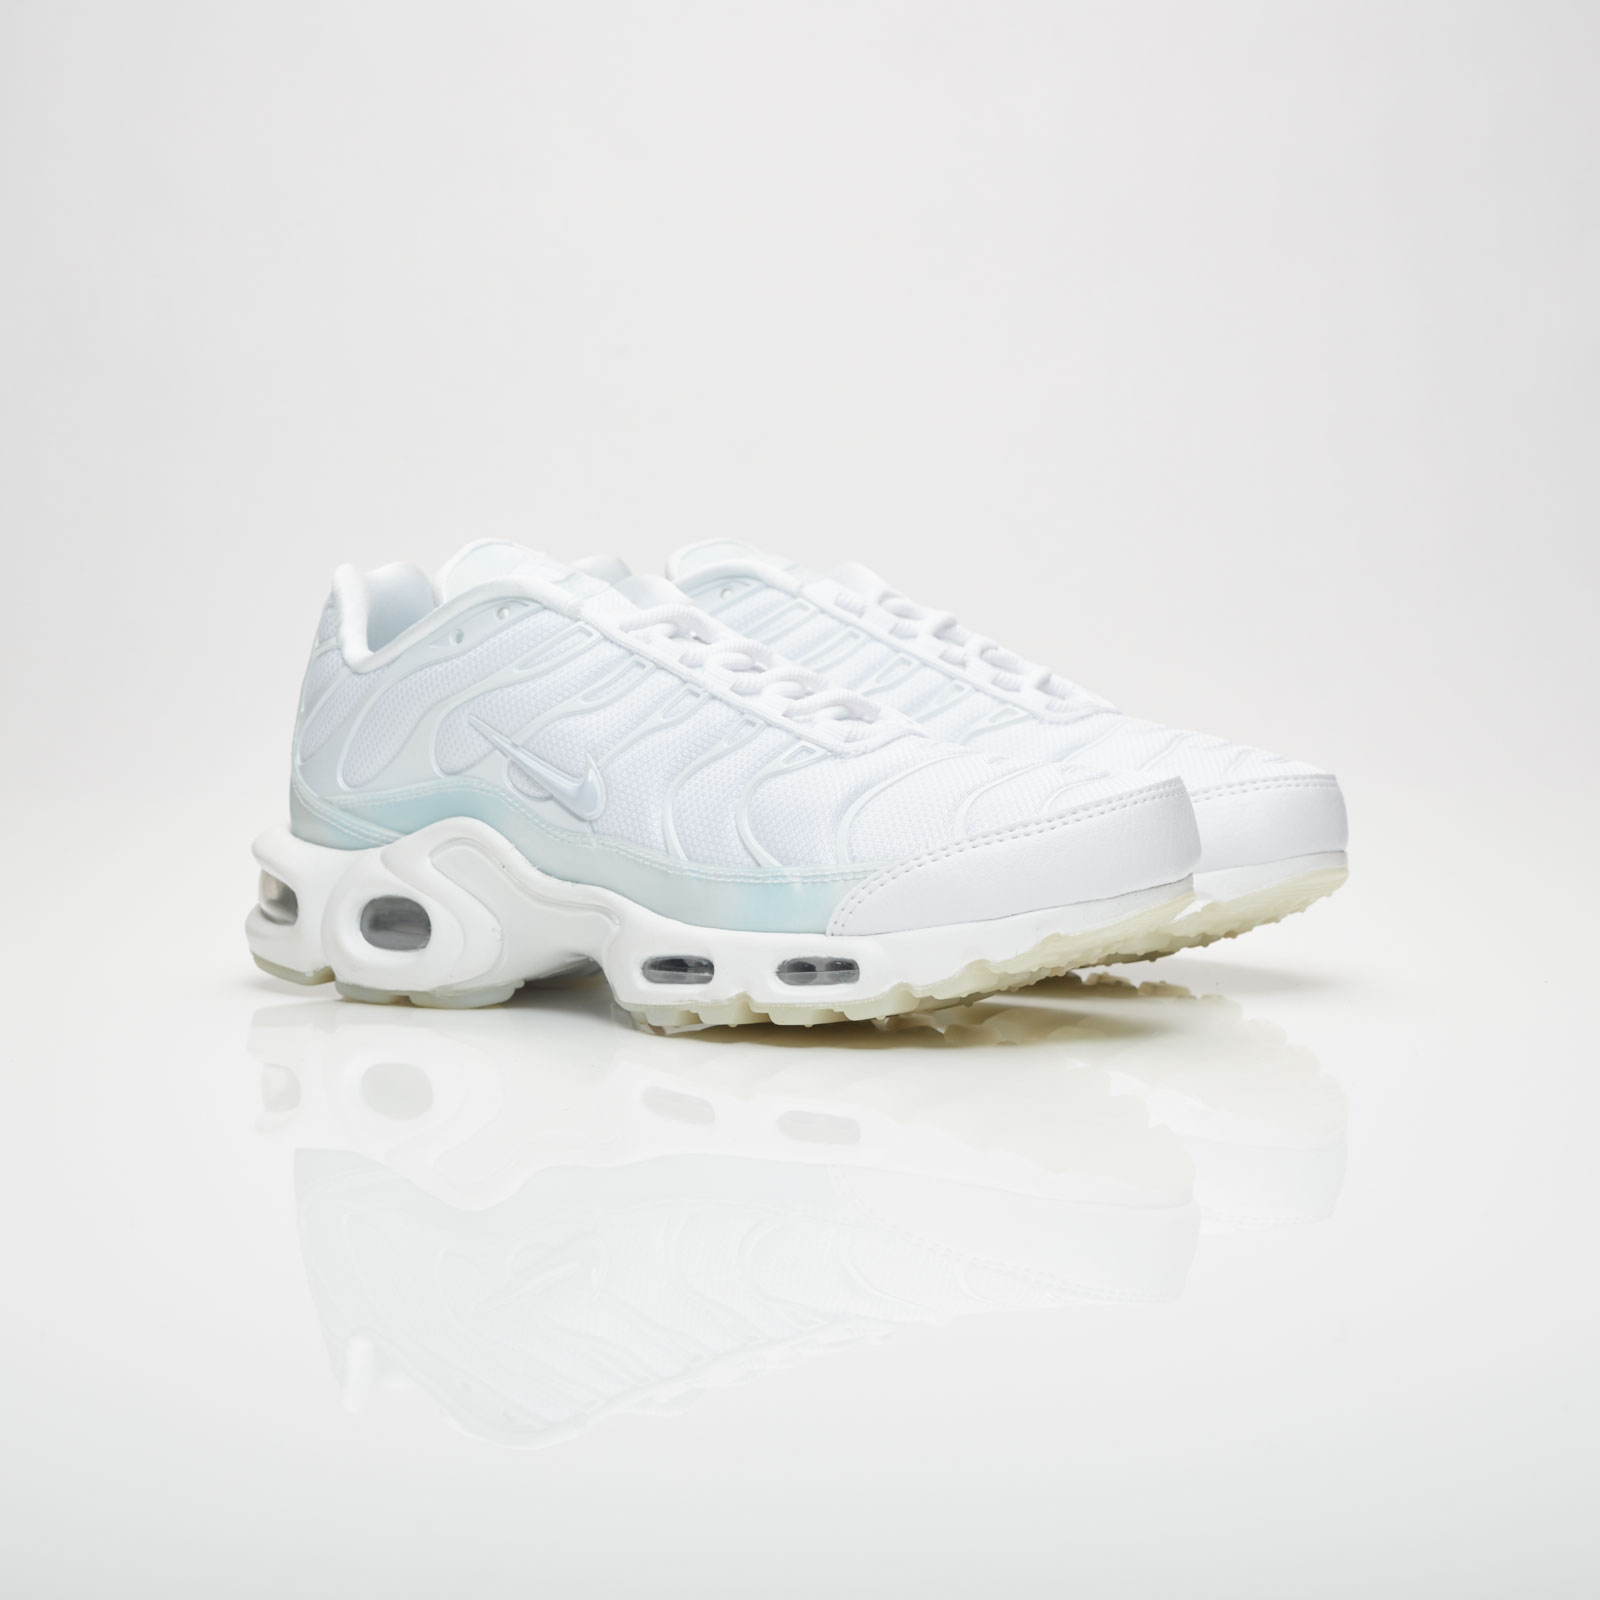 Nike Wmns Air Max Plus SE 862201 101 Sneakersnstuff